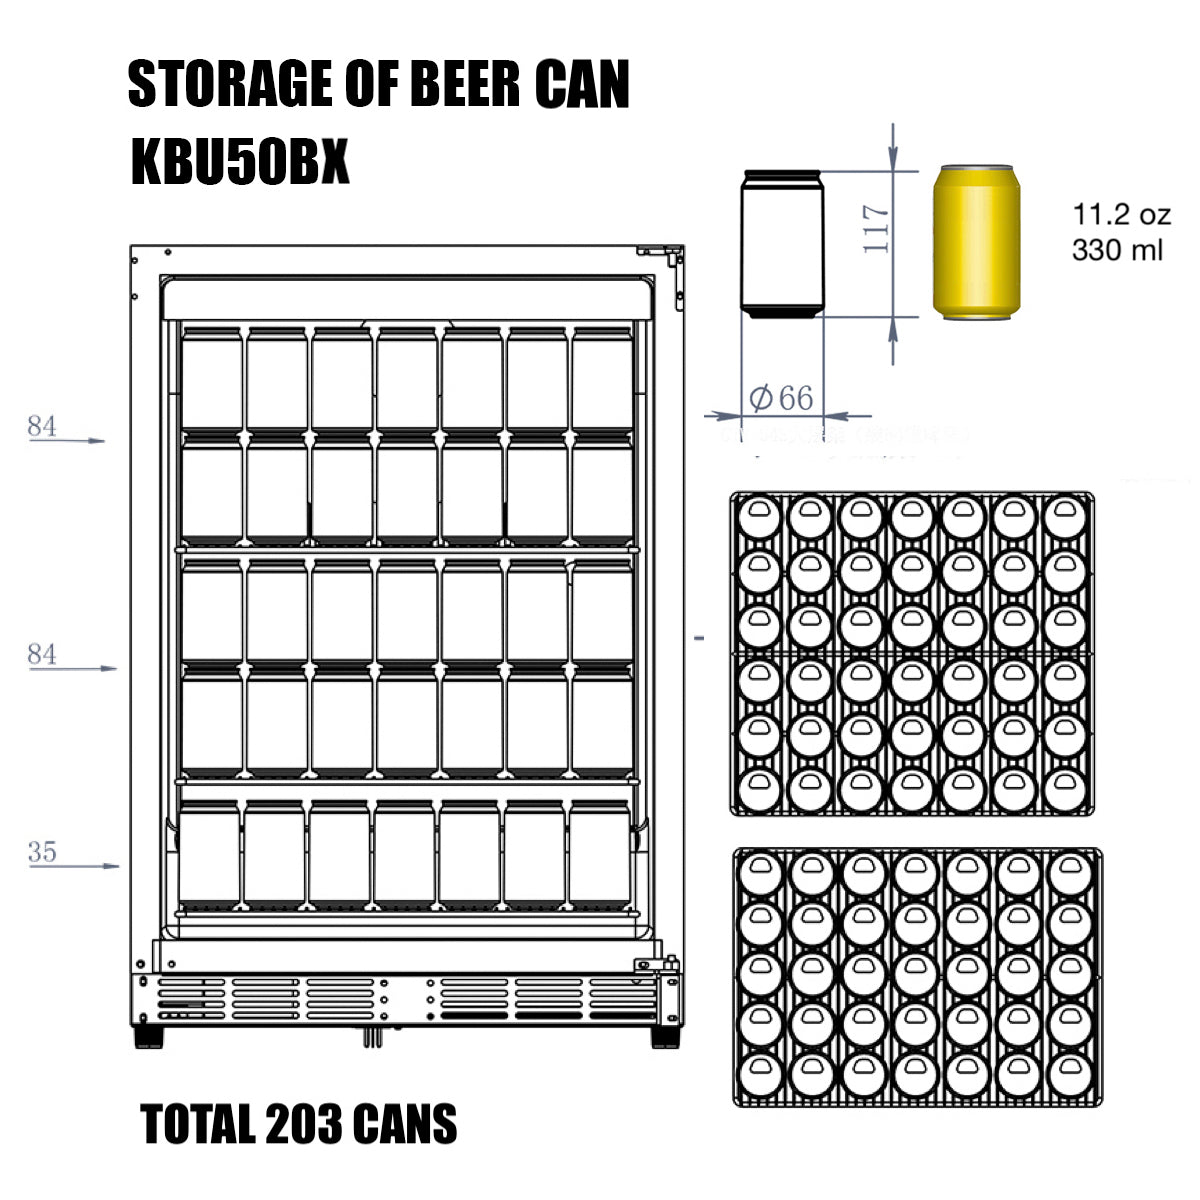 KBU50B Storage of Beer Can